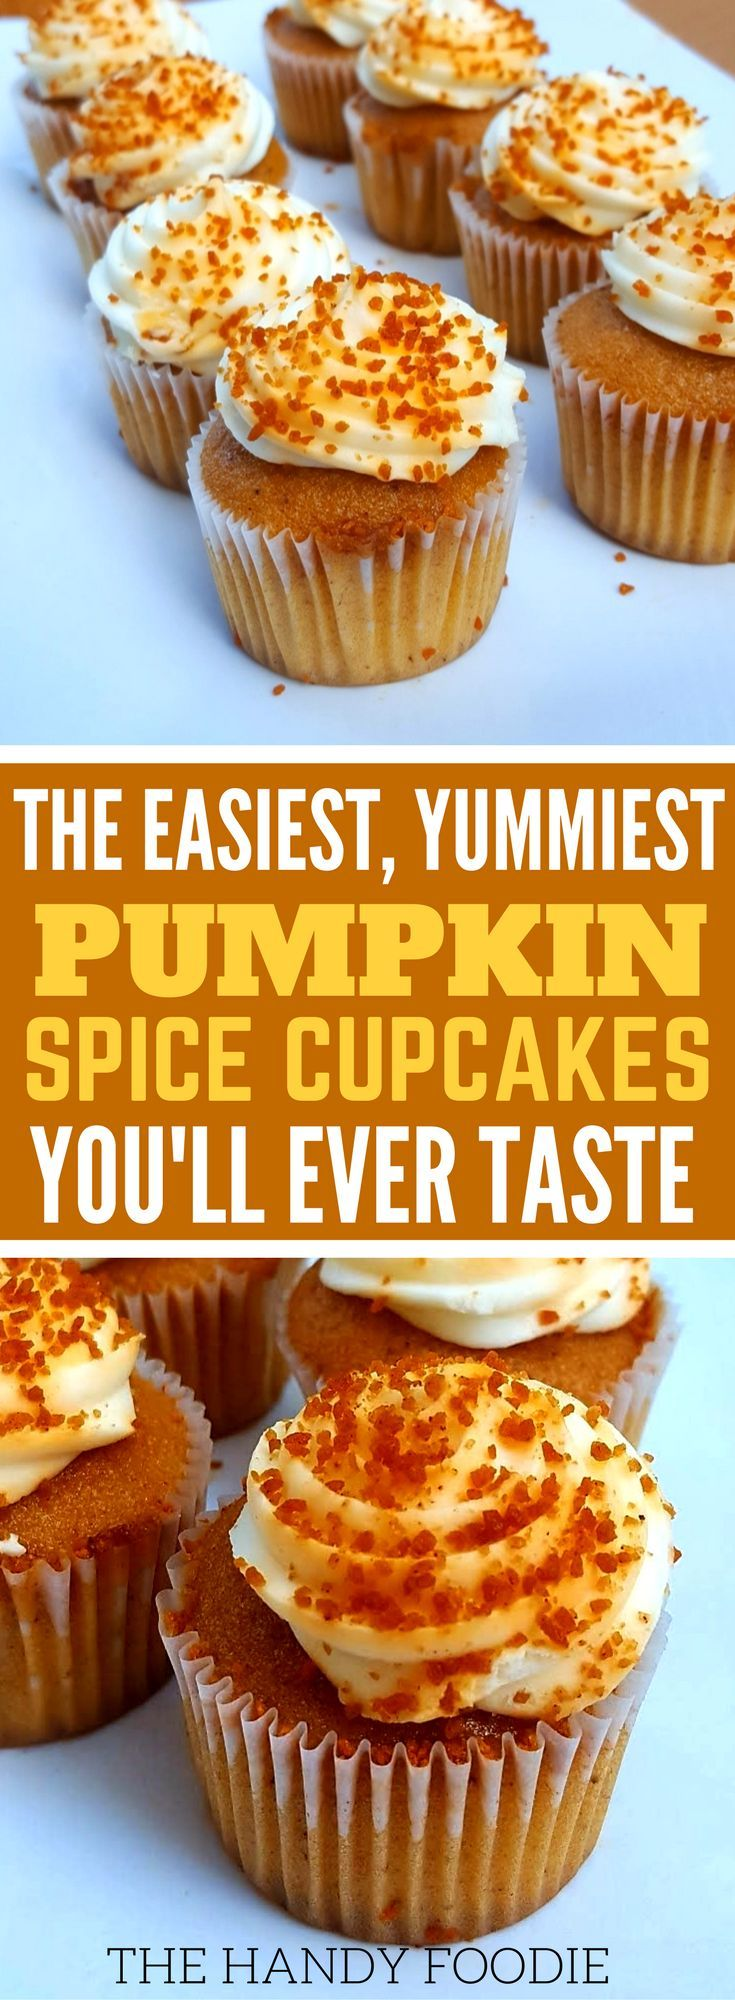 This easy pumpkin cupcake with cake mix is THE BEST! I'm so happy I found this on many of my well-kept fall cupcake recipes. Now I have this easy cupcake recipes box for Fall season! I will include this in my list of yummy desserts for kids and easy dessert for parties. Truly, this is one the best Thanksgiving desserts. Definitely pinning!